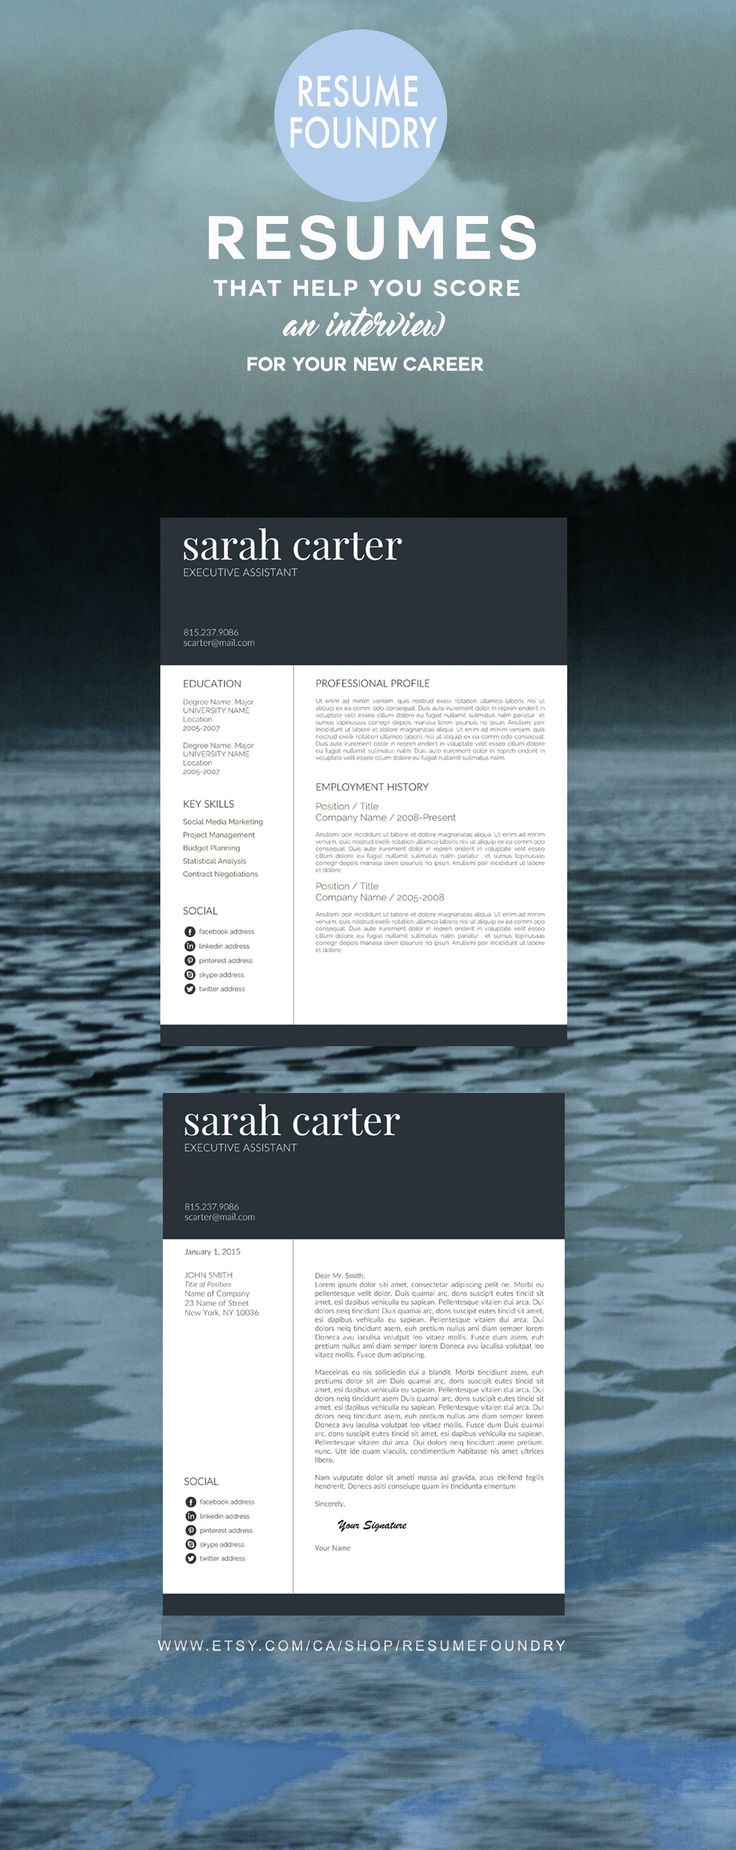 Awesome 1 Hexagon Template Big 1 Page Resume Format For Freshers Shaped 10 Envelope Template Illustrator 10 Steps To Writing A Resume Youthful 1099 Excel Template Fresh12 Month Budget Template 119 Best Images About Job Inspiration On Pinterest | Cover Letters ..